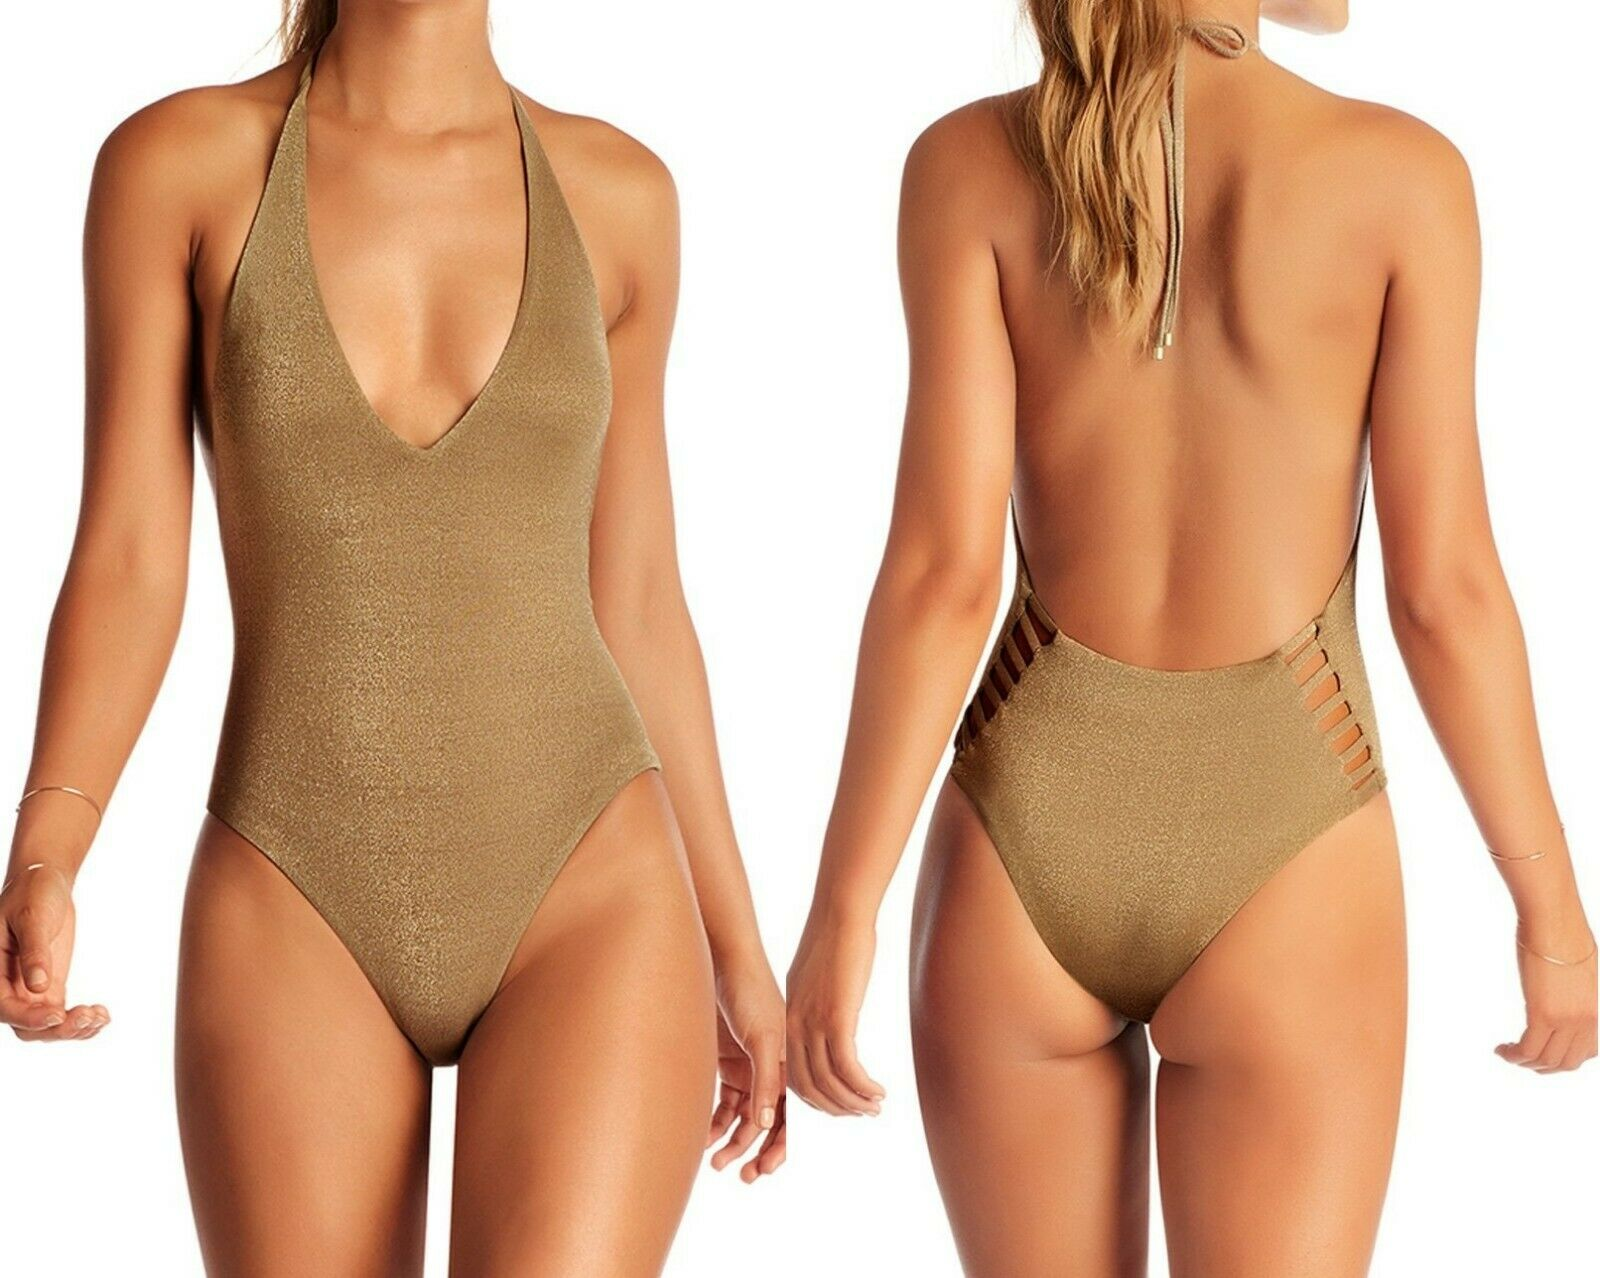 Vitamin A white Bodysuit one-piece swimsuit sz XL bronze metallic gold